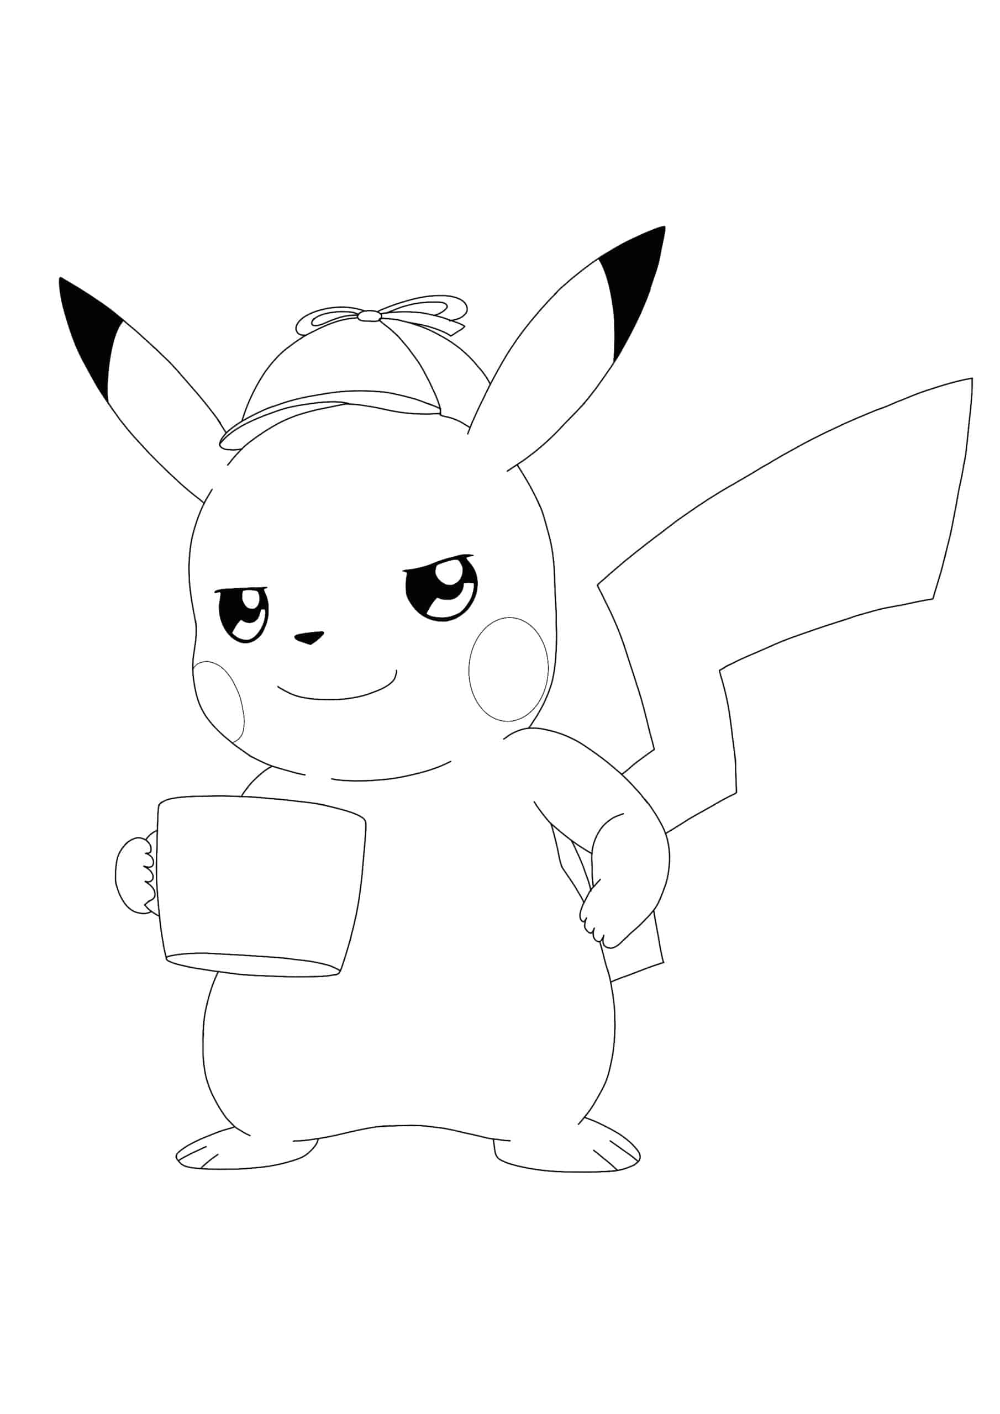 Detective Pikachu Drinks Coffee Coloring Pages - 6 Free Coloring